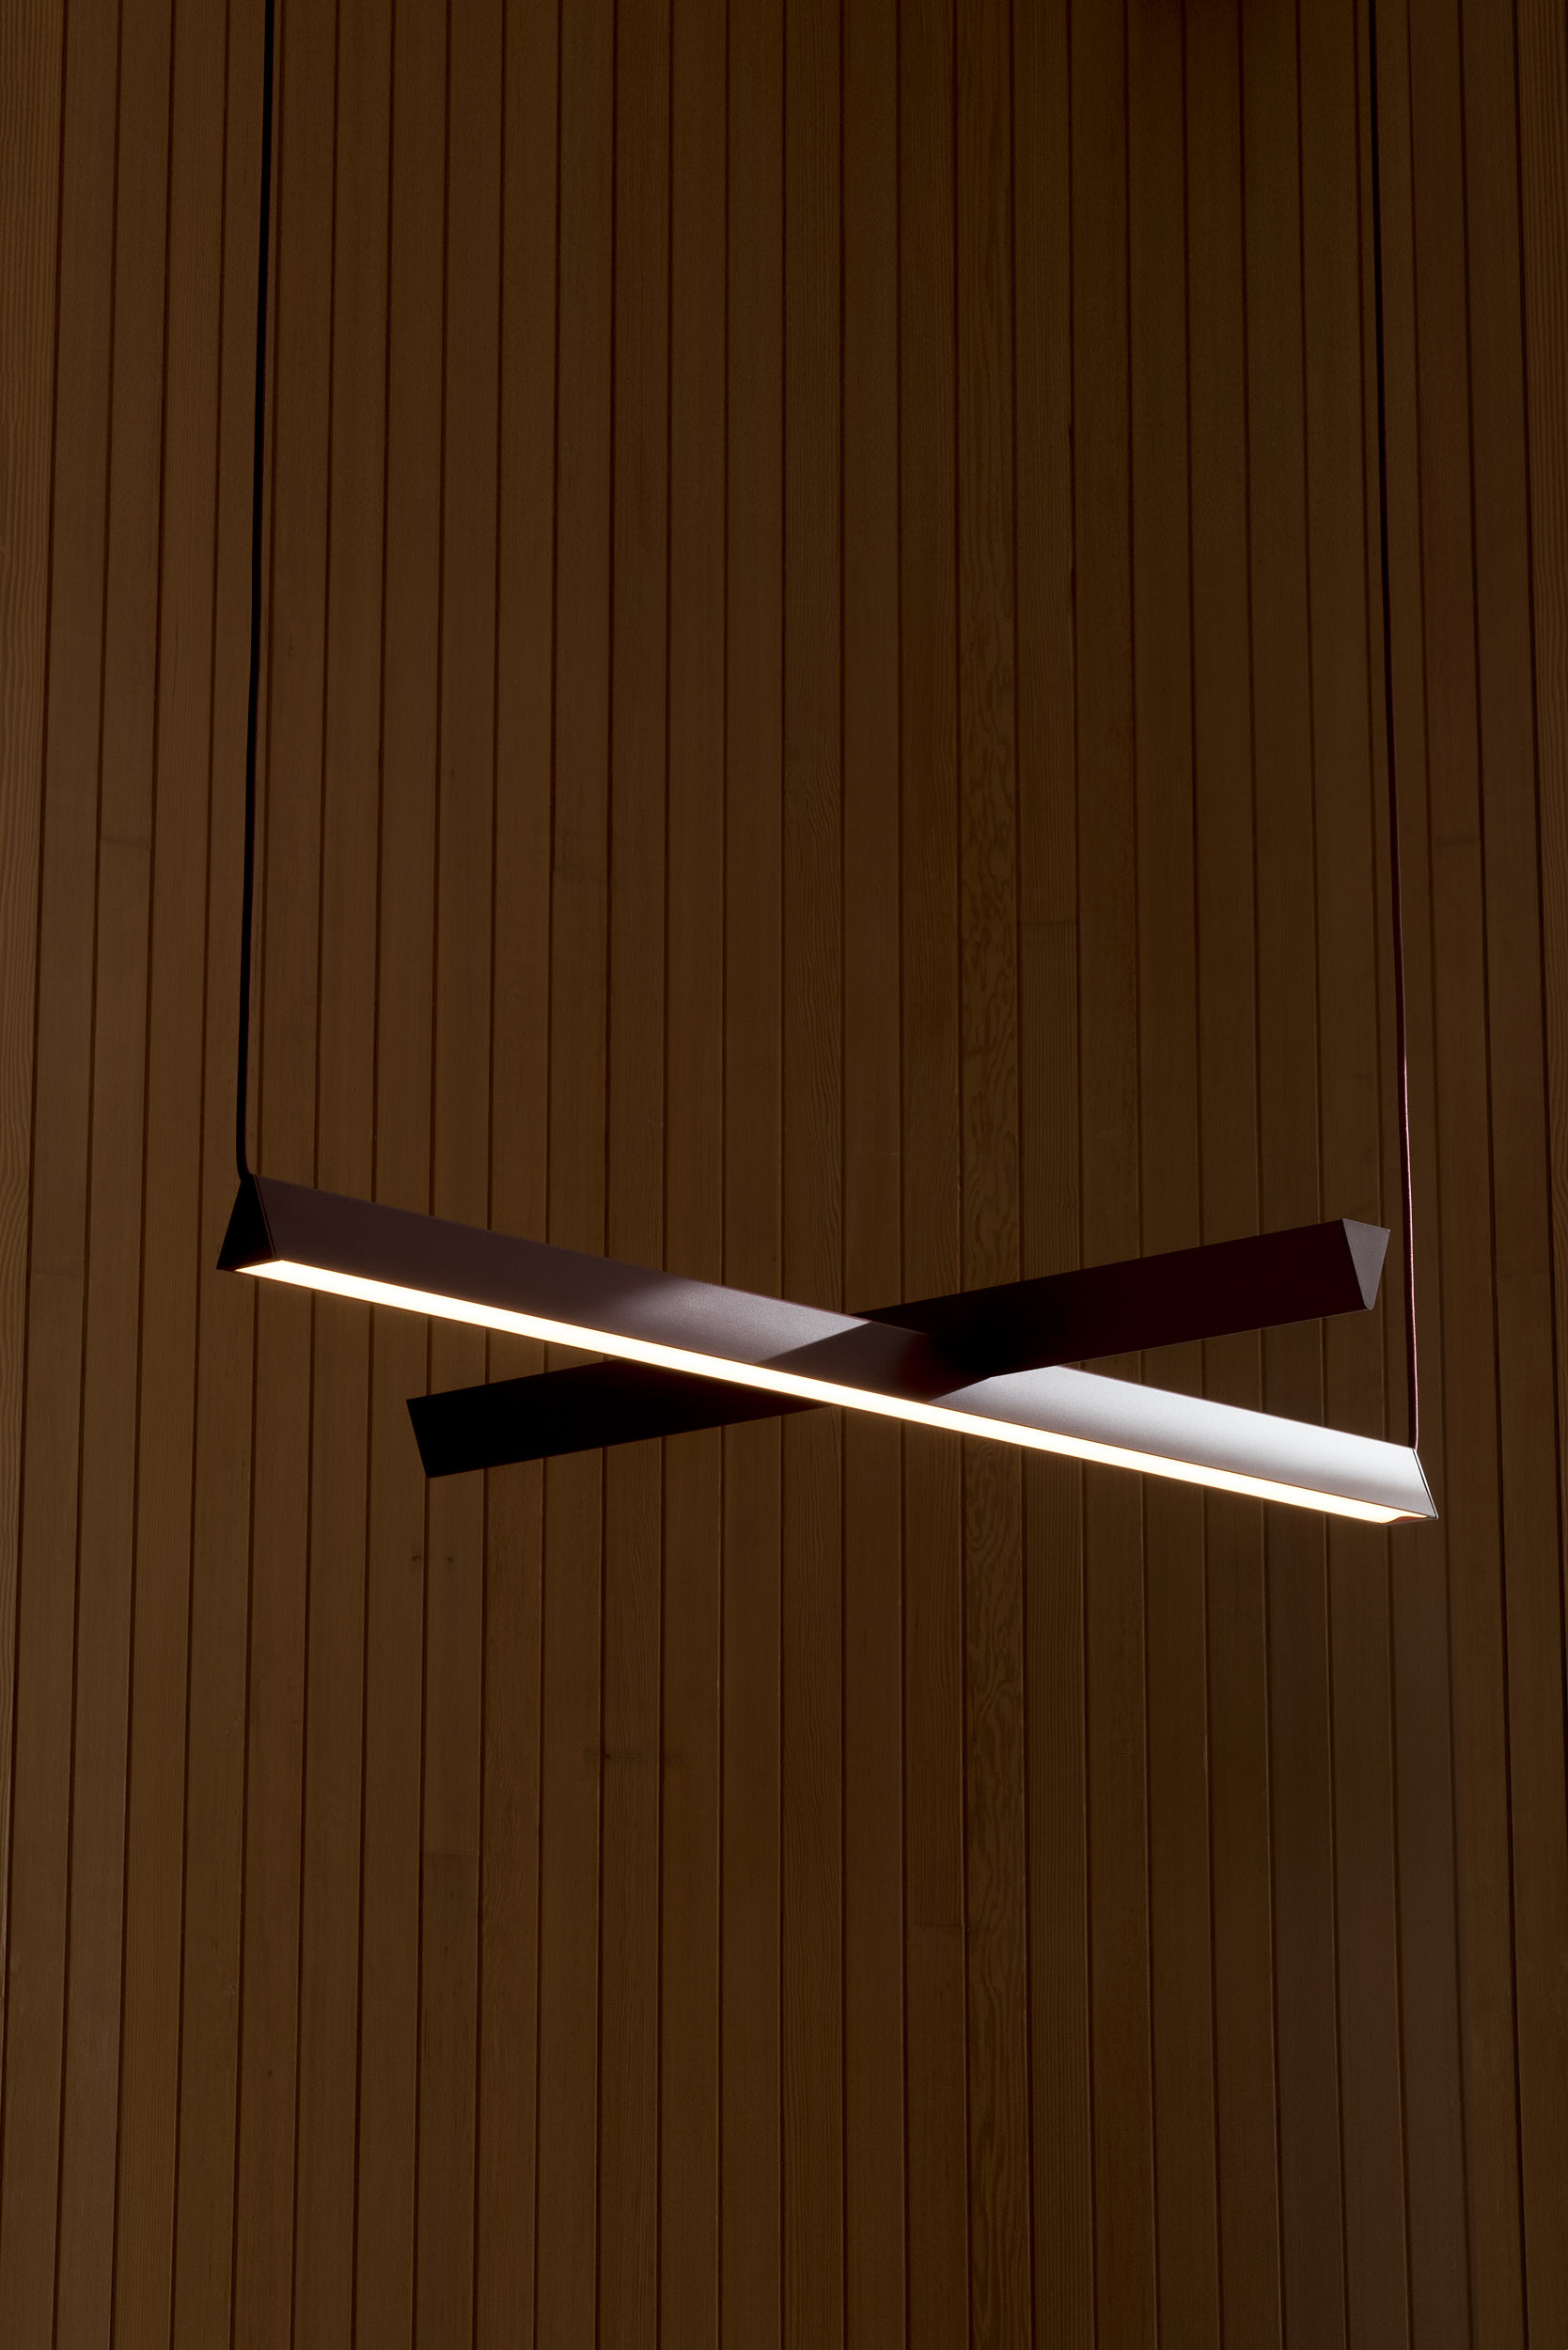 Lighting Design Studio Lambert & Fils Launches the Mile Collection on Anniversary Magazine